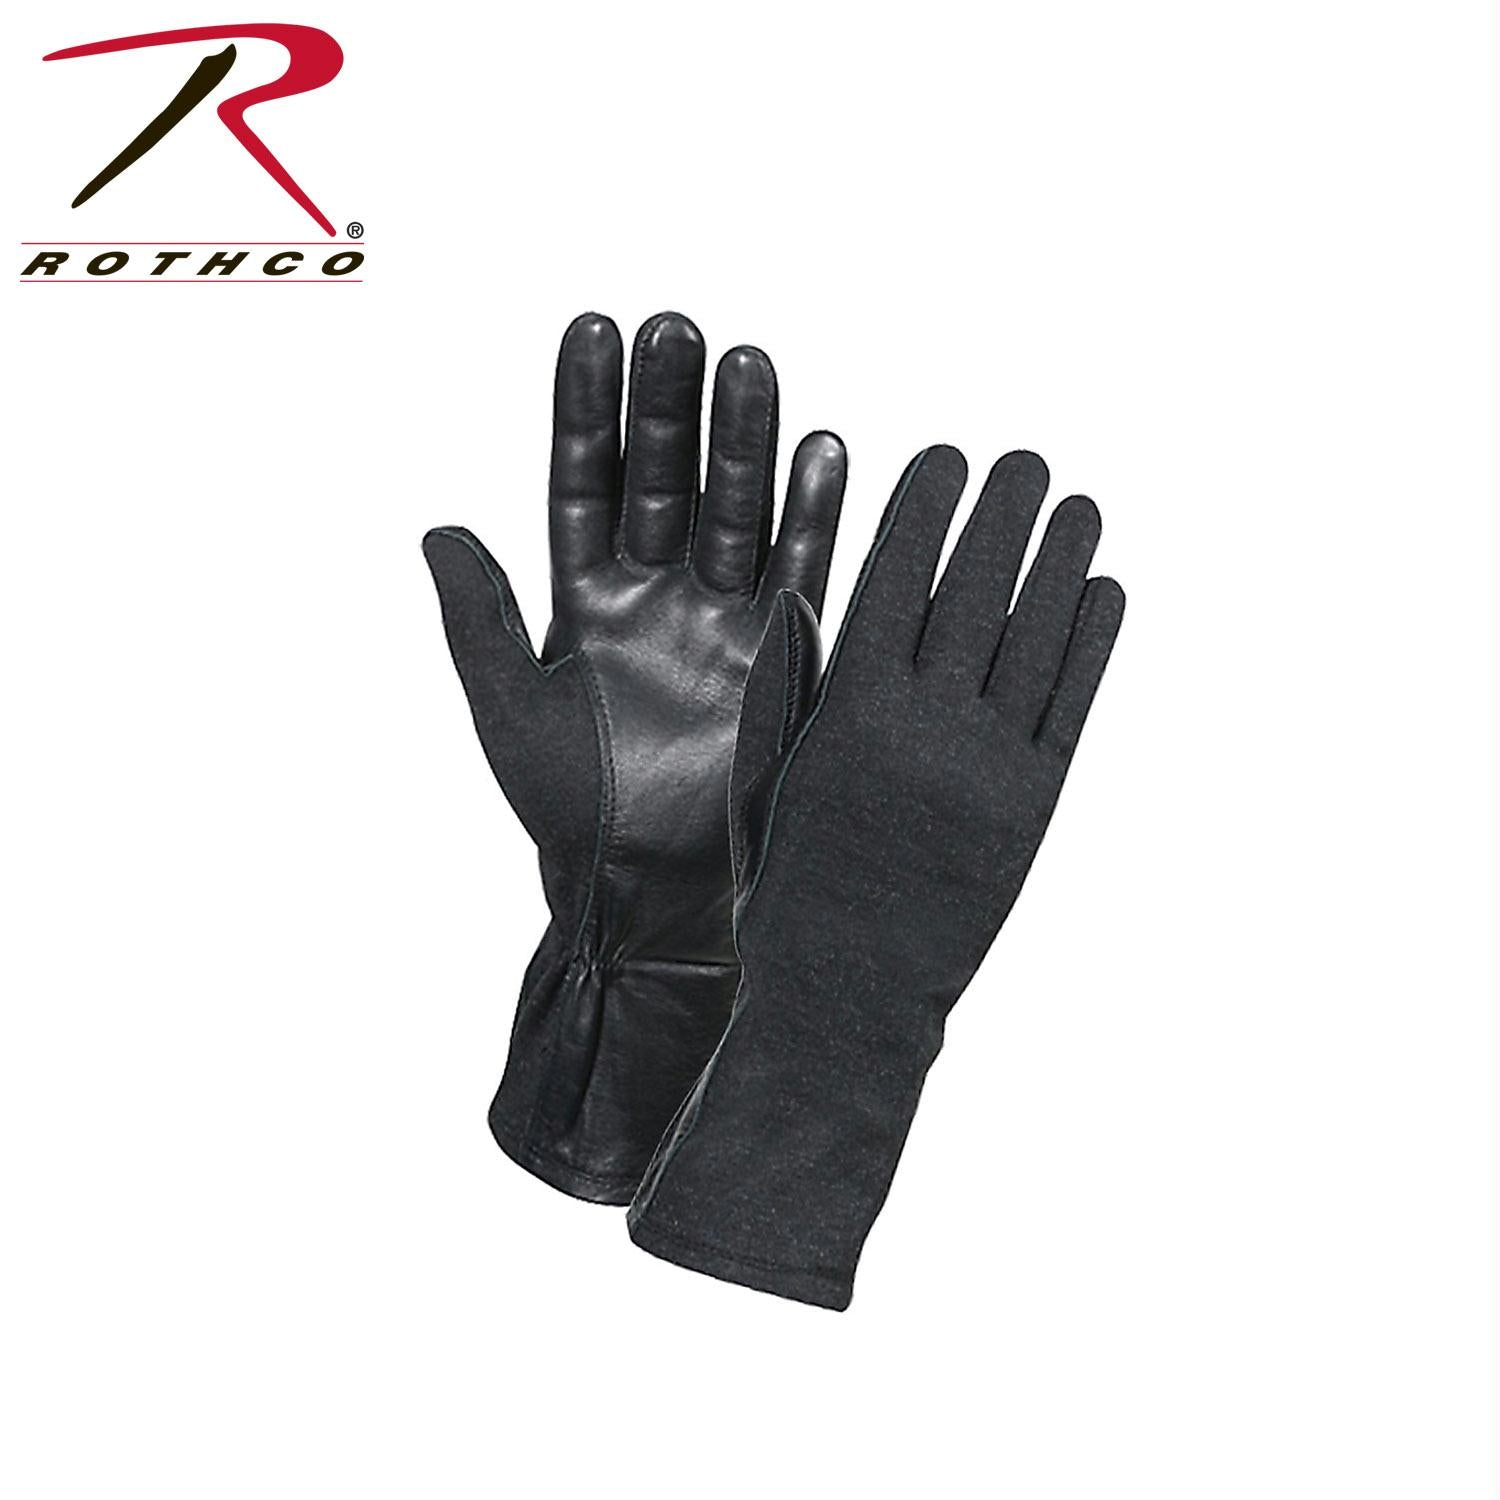 Rothco G.I. Type Flame & Heat Resistant Flight Gloves - Black / 11